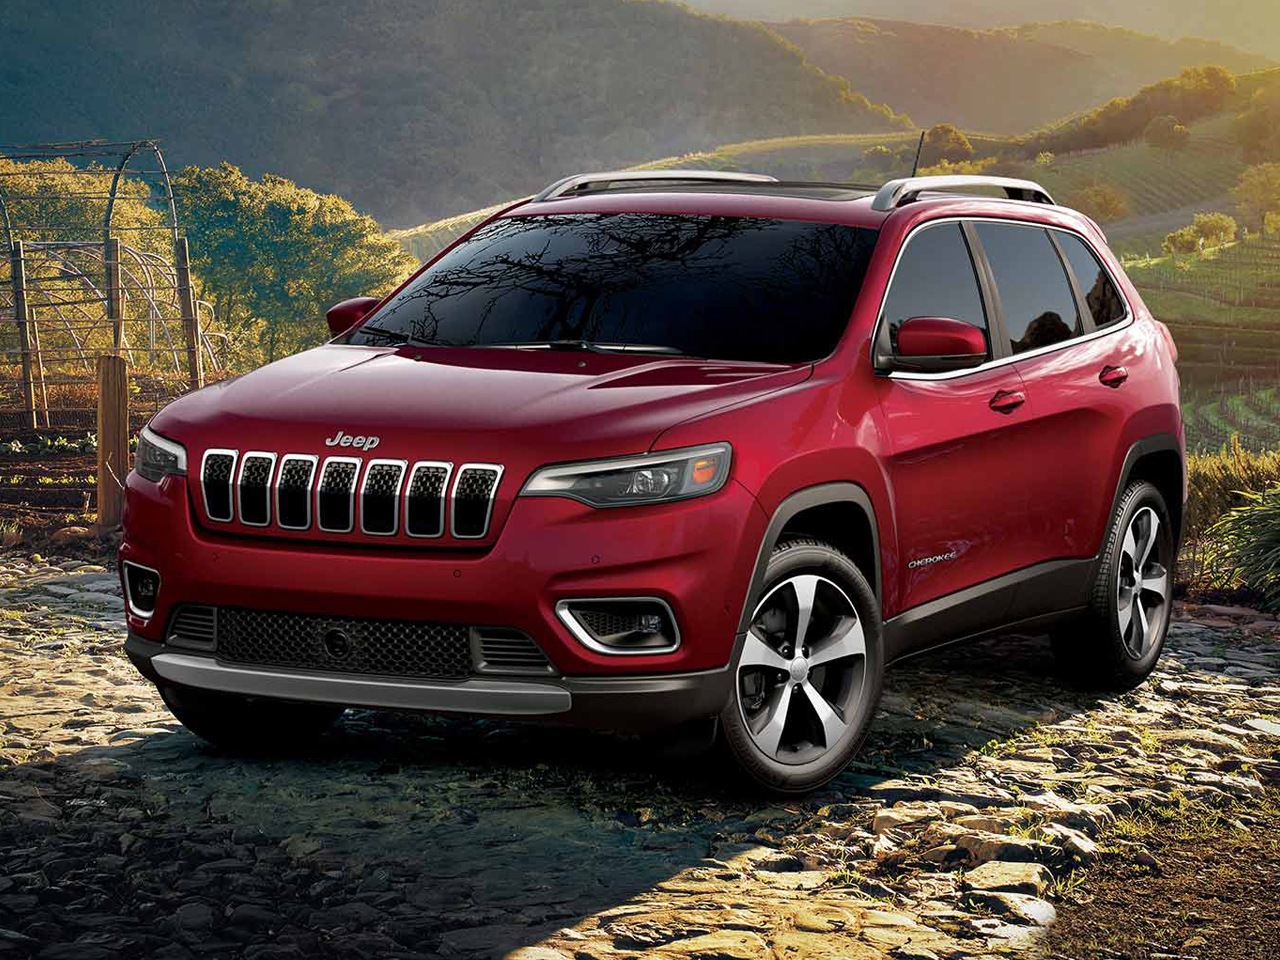 Huntington Beach Jeep >> 2019 Jeep Cherokee Dealer In Orange County Huntington